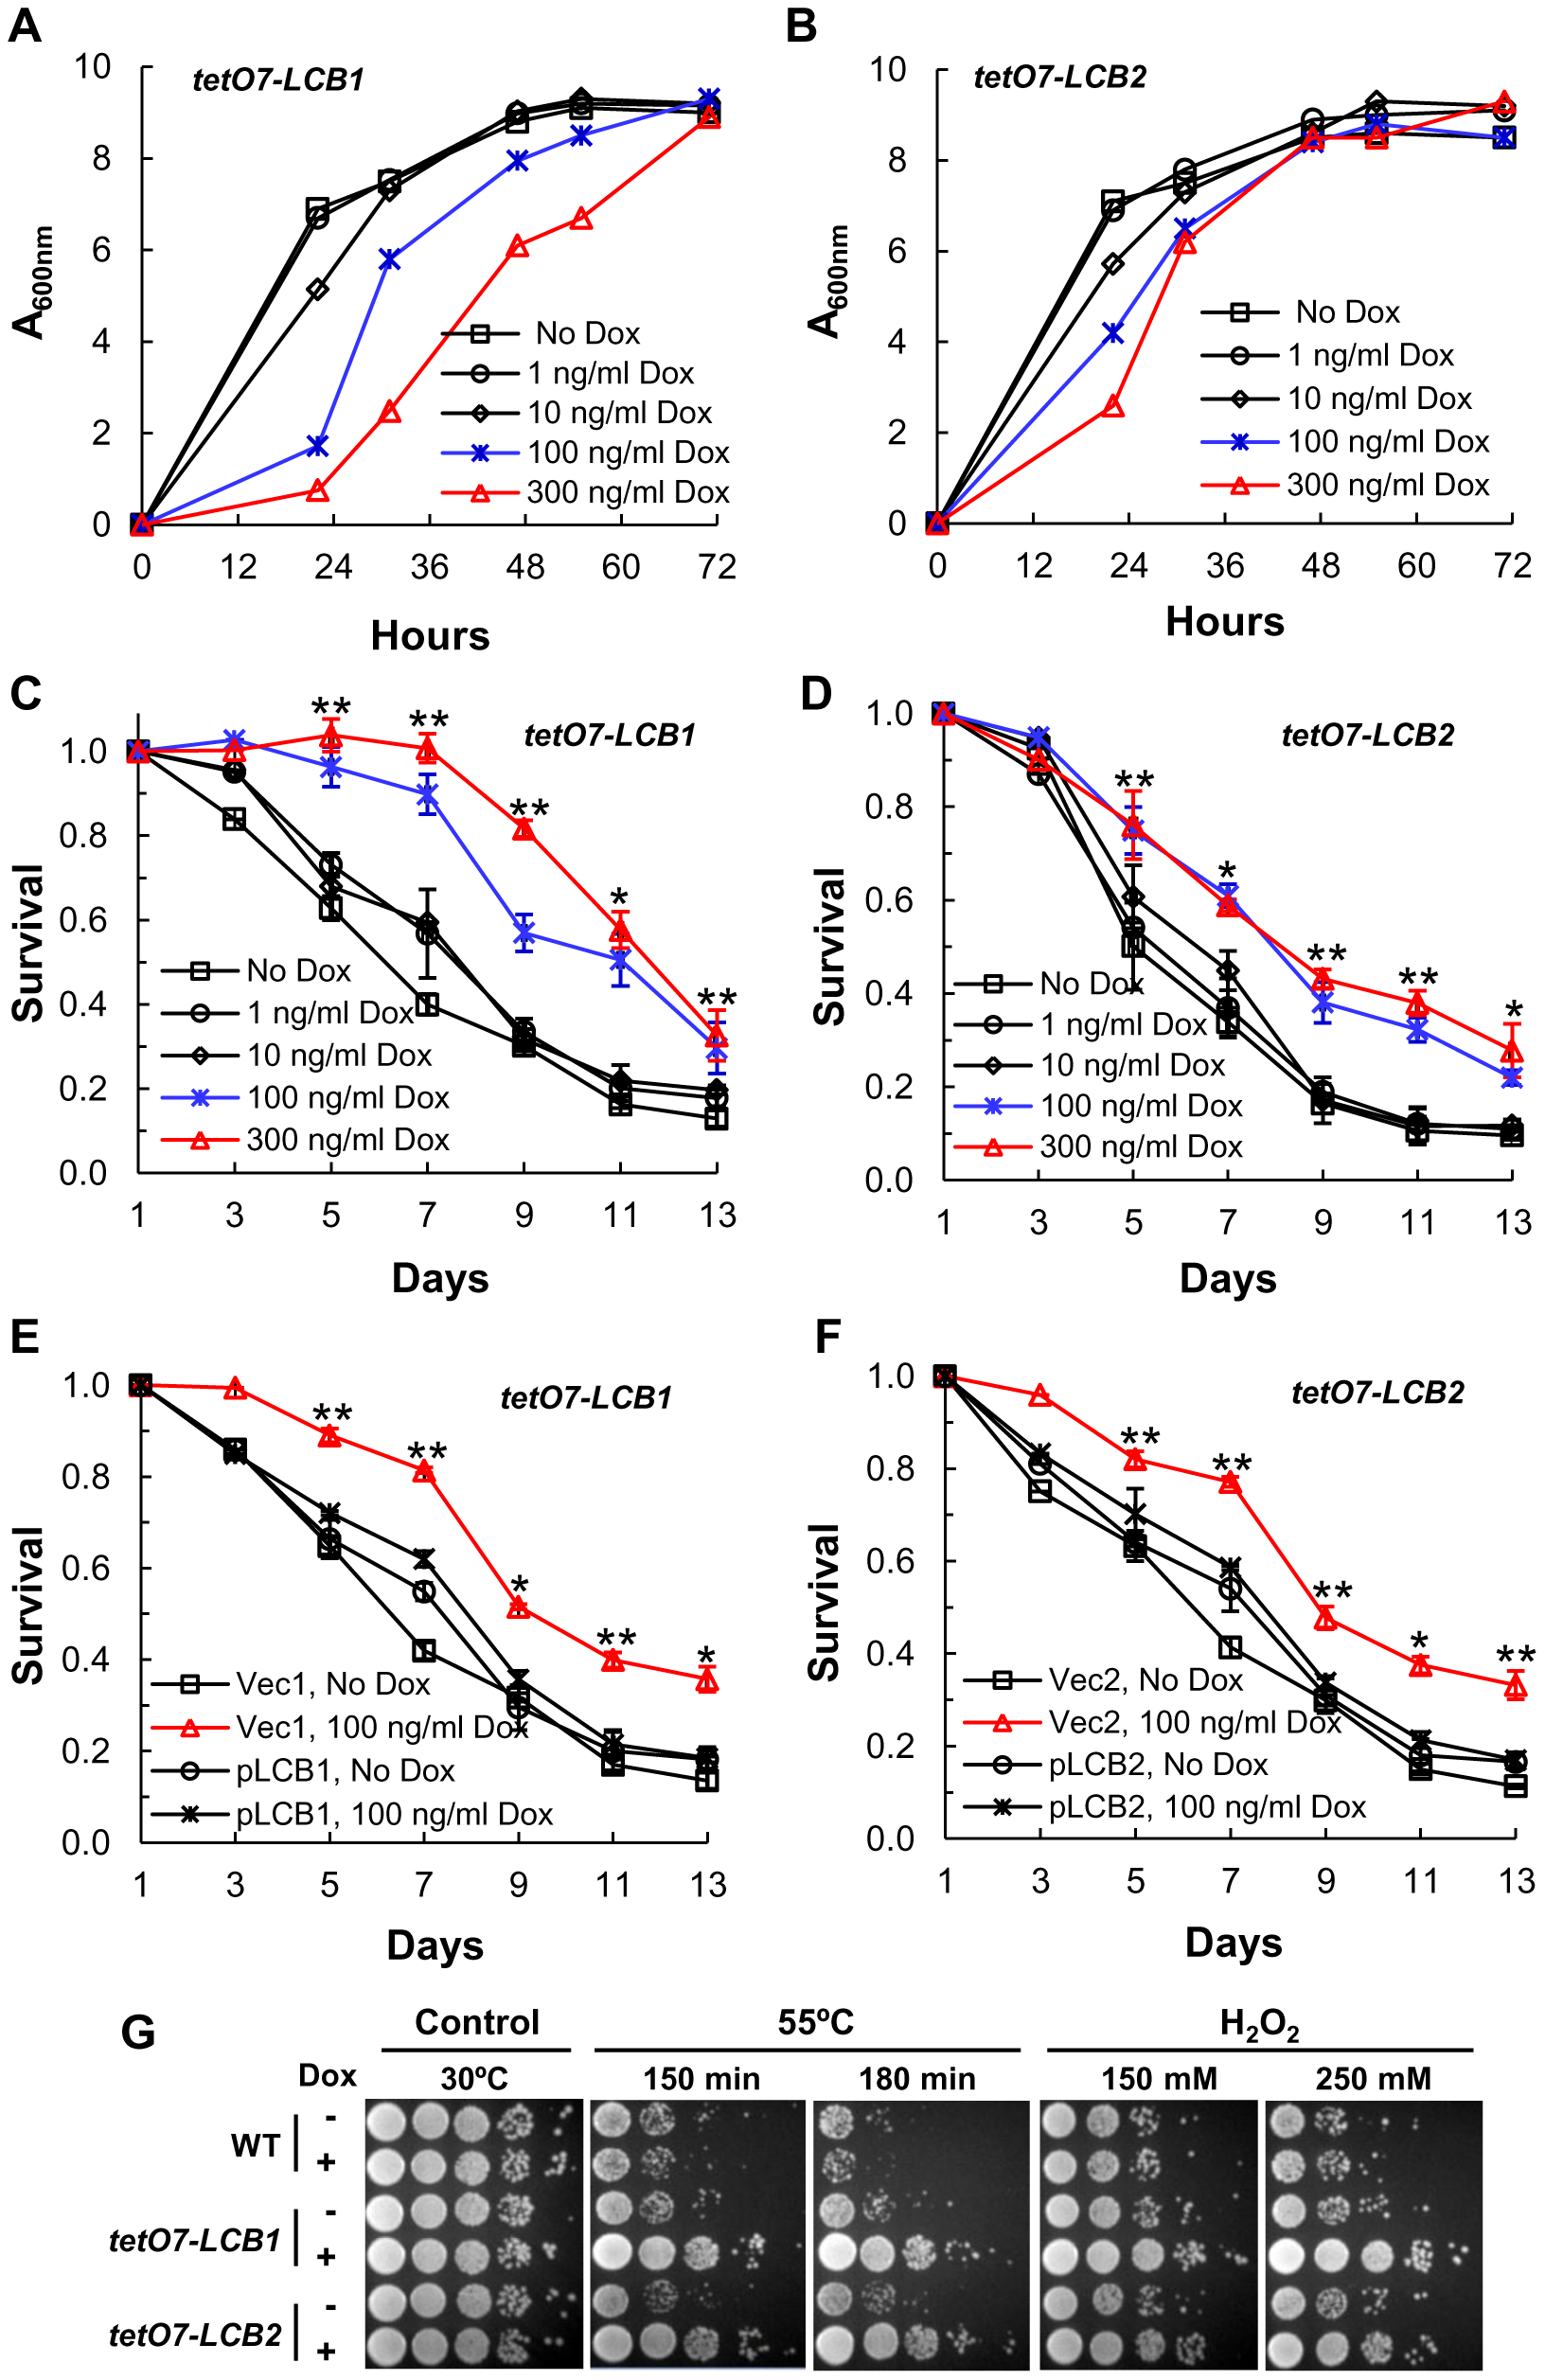 Down-regulating sphingolipid synthesis increases CLS.